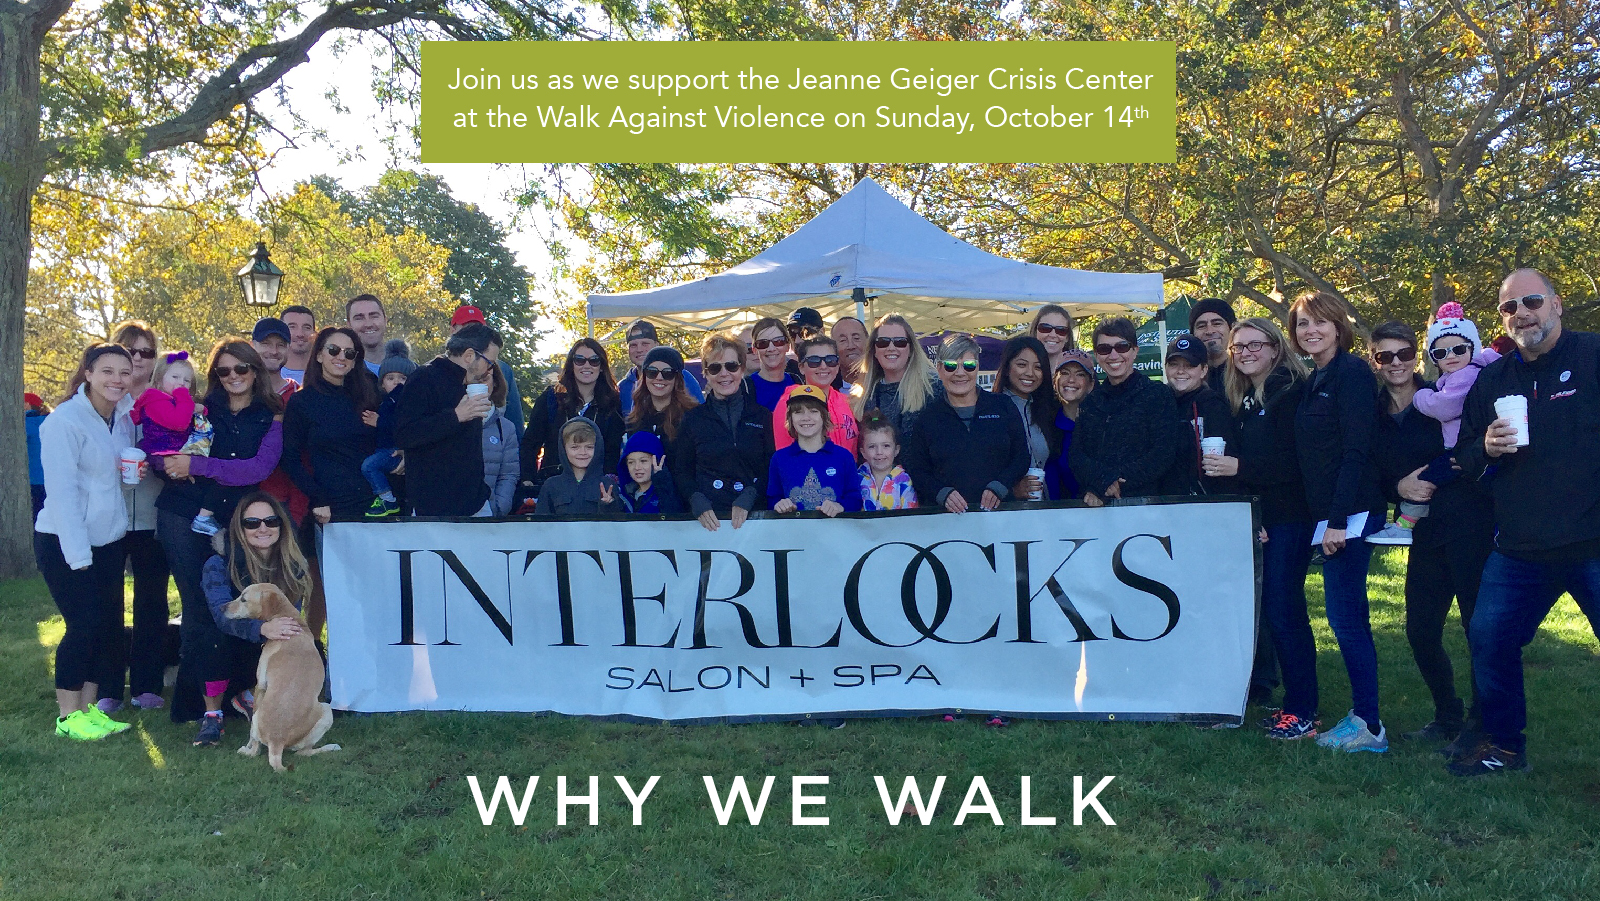 The INTERLOCKS team at the 2017 Walk Against Domestic Violence